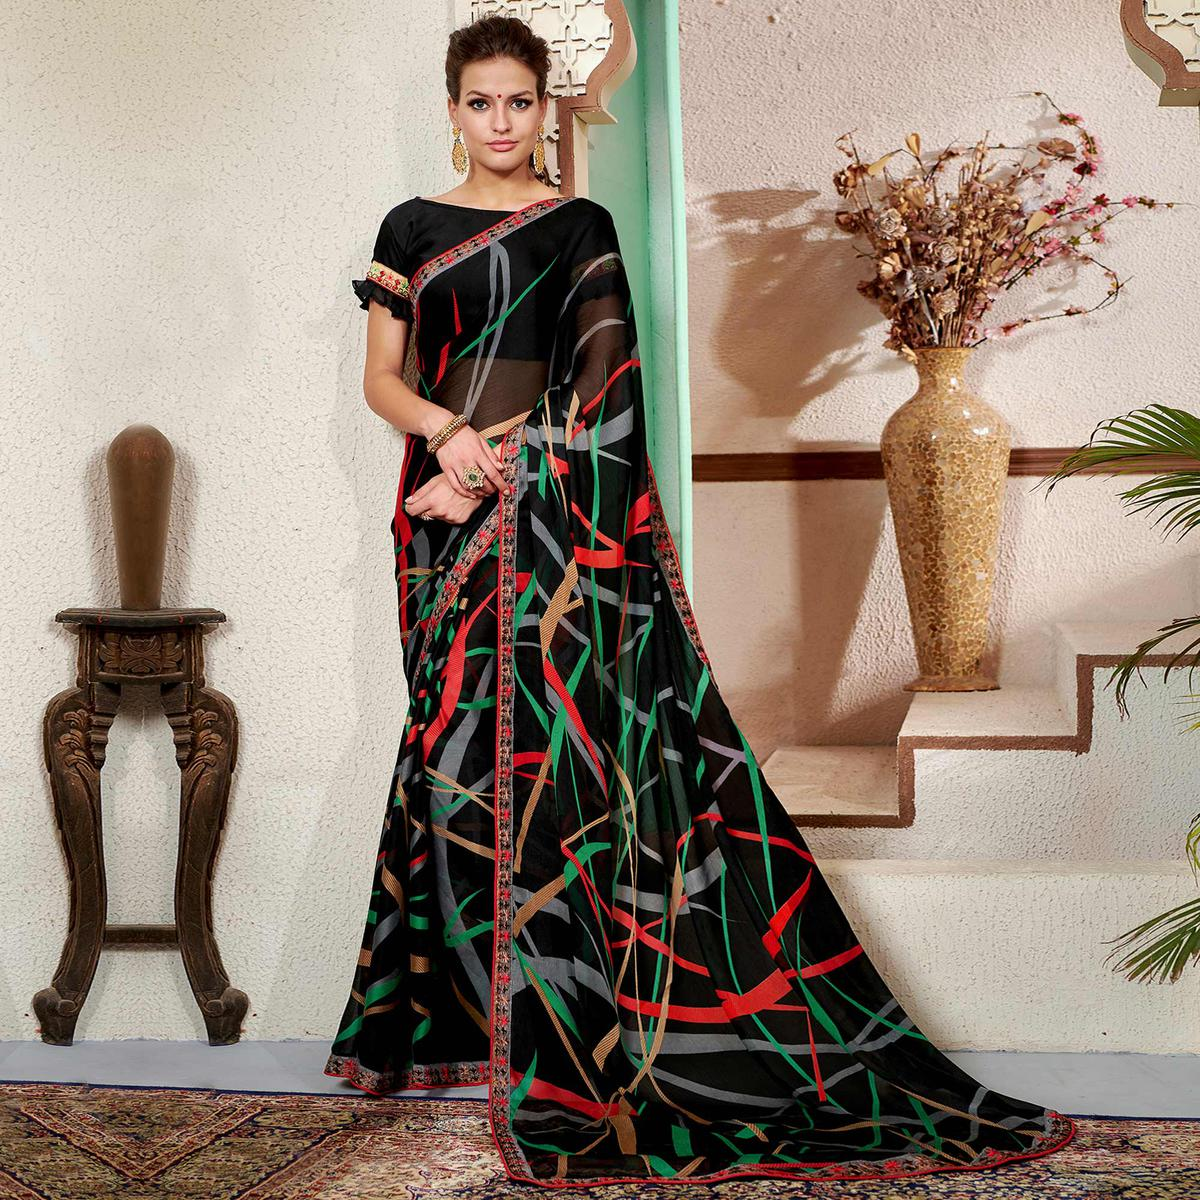 Desirable Black Colored Casual Wear Printed Chiifon-Georgette Saree